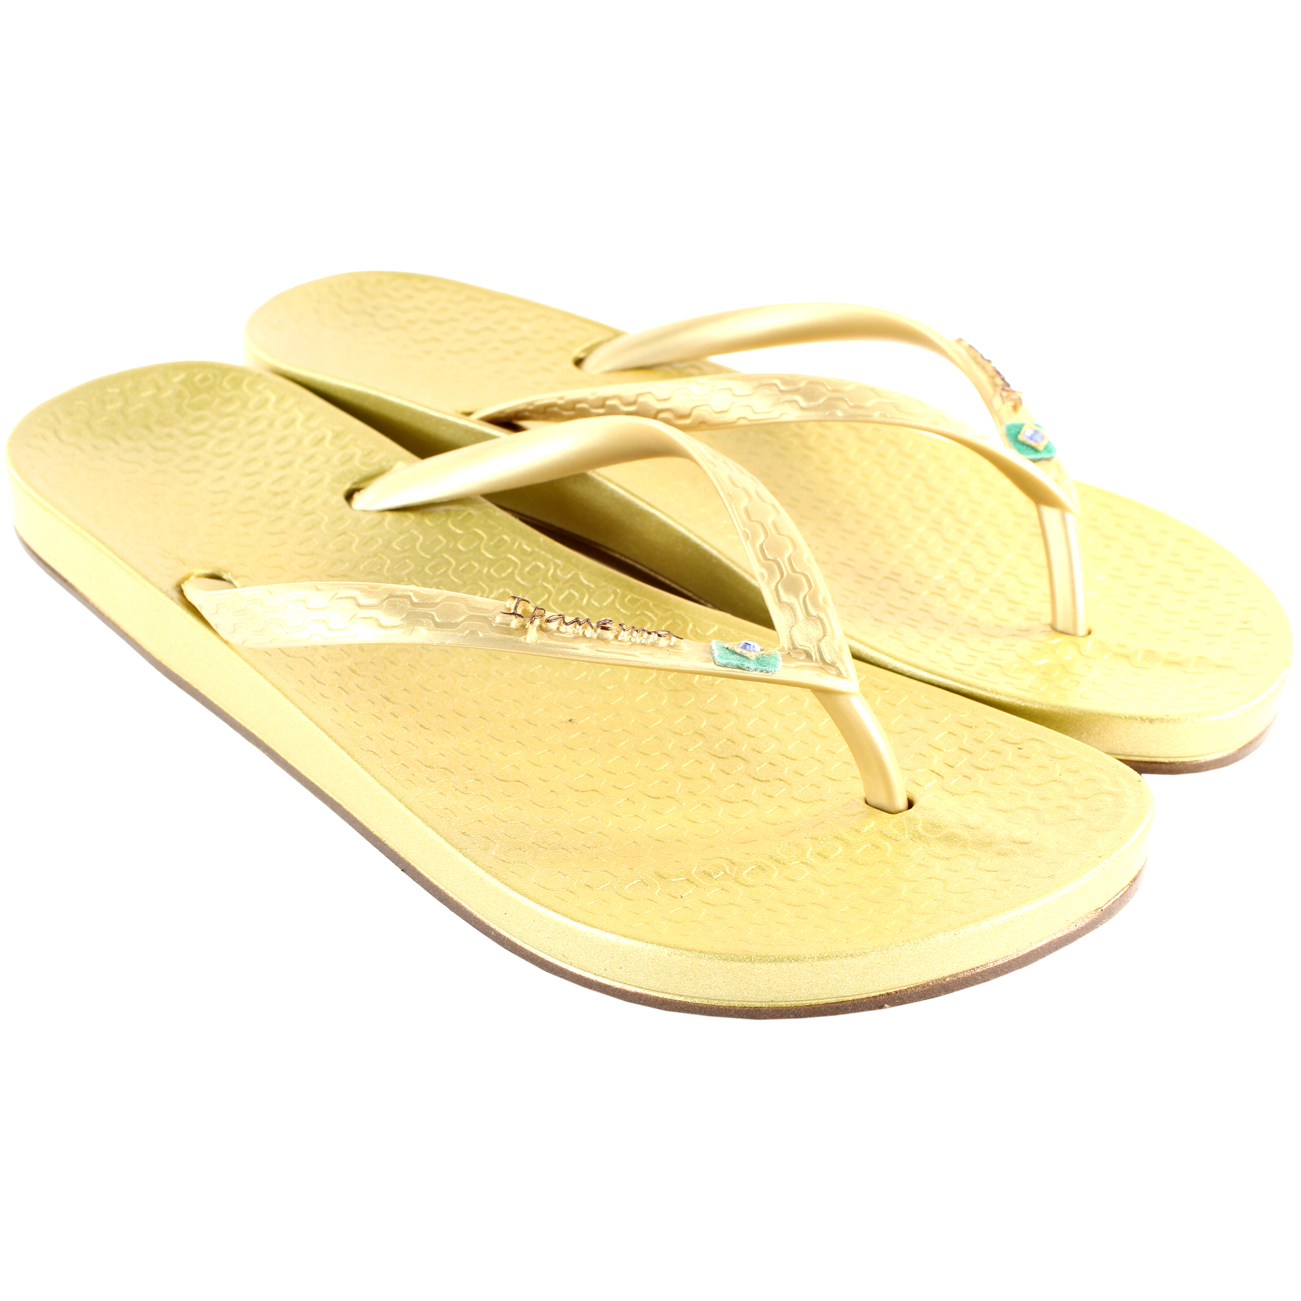 Retailer of flip flops, sandals, slides, casual shoes and footwear including Rainbow Sandals, Olukai, Birkenstock, Sanuk, Havaianas, Cobian, Reef. We also carry beach and outdoor accessories for .